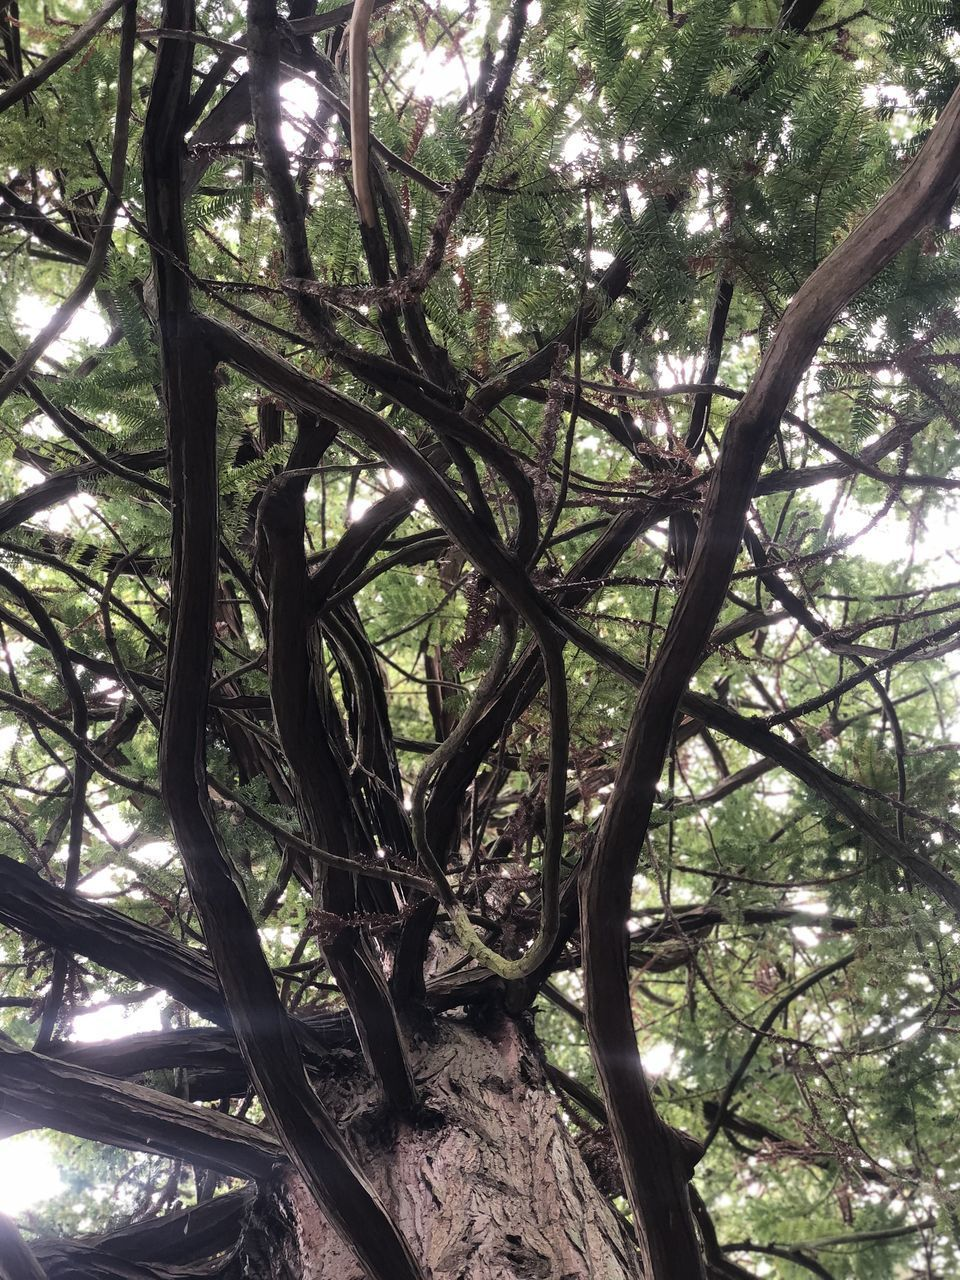 LOW ANGLE VIEW OF TREE TRUNKS